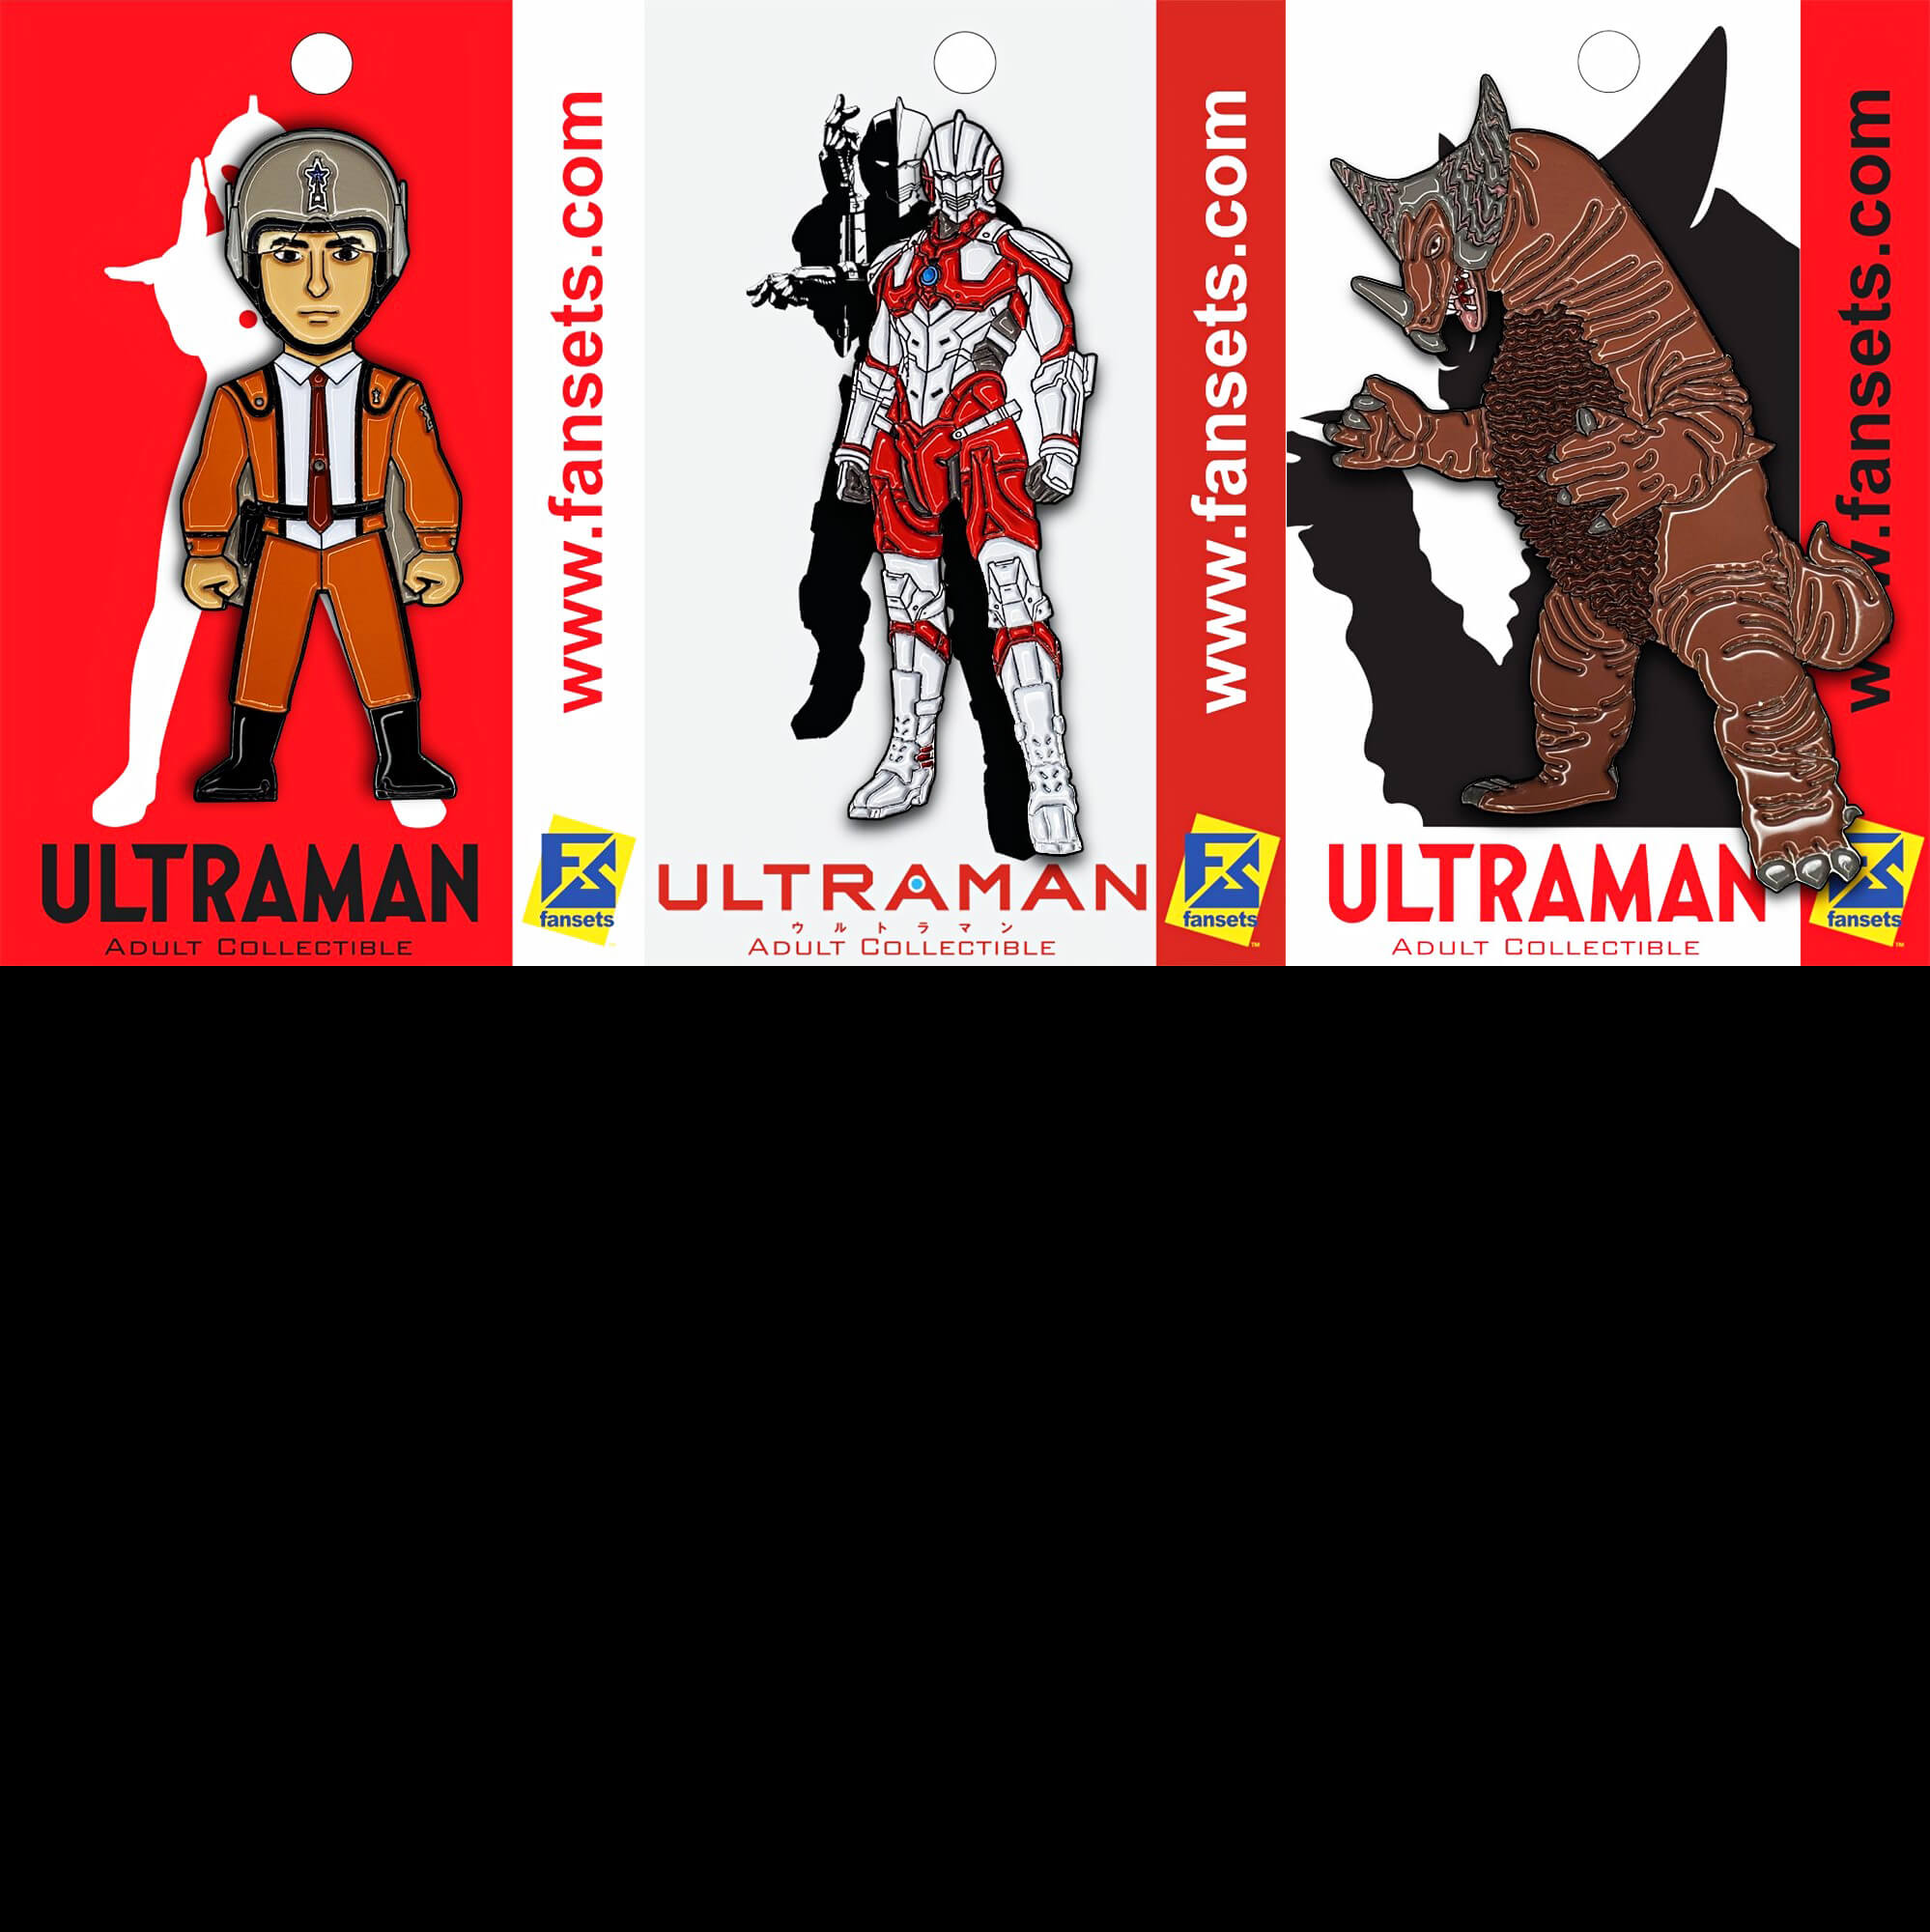 FANSETS BRINGS TOKUSATSU TO AMERICAN LAPELS WITH CLASSIC AND ANIME ULTRAMAN PINS